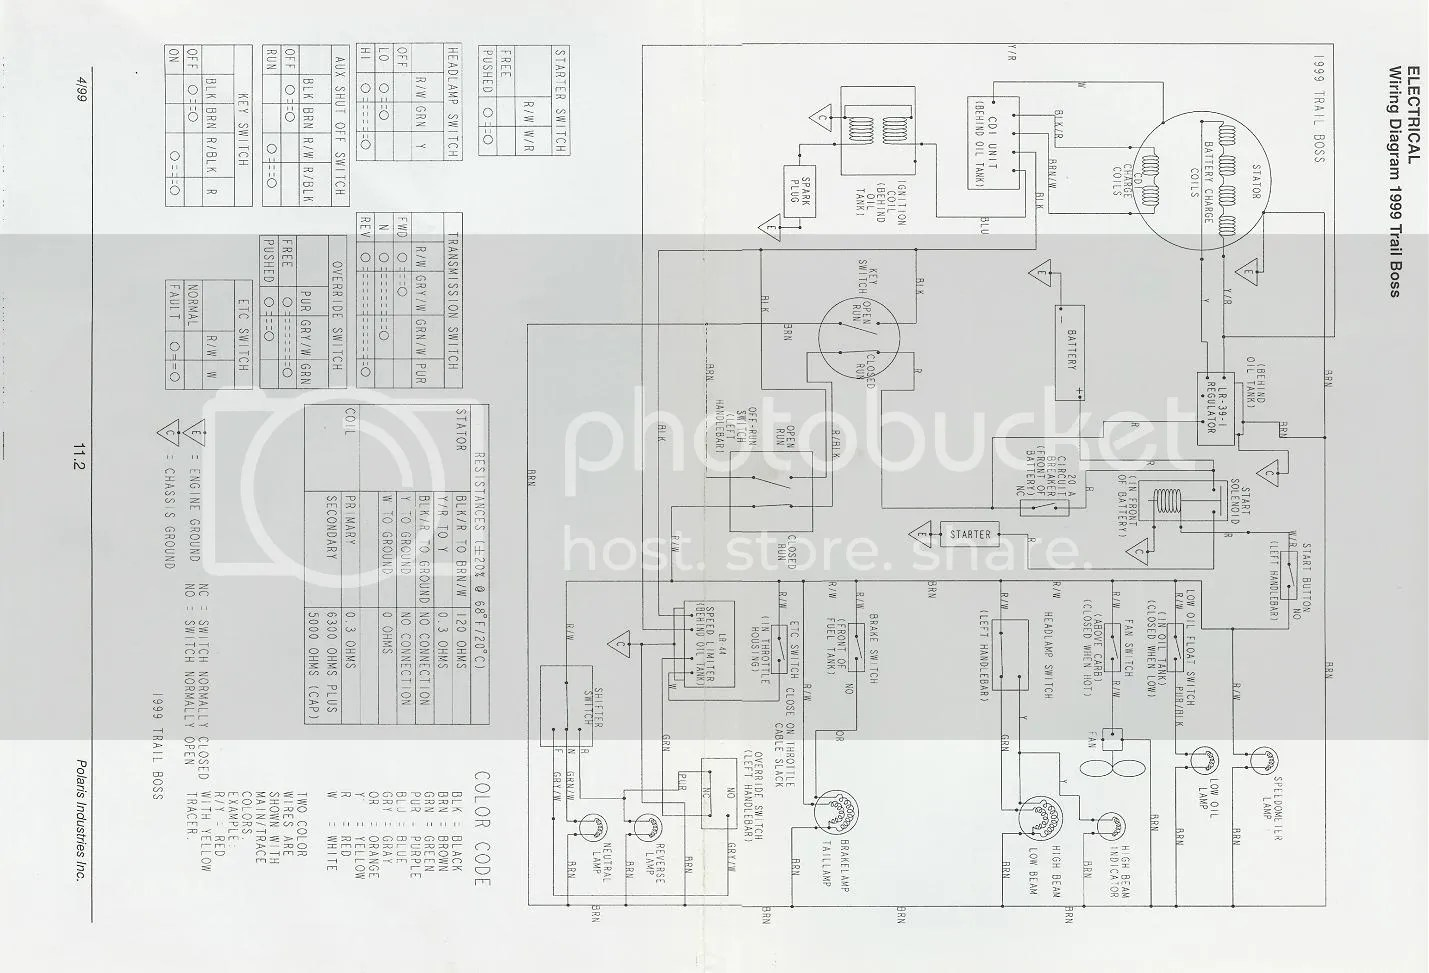 hight resolution of polaris trailblazer wiring diagram wiring diagram for professional u2022 rh bestbreweries co polaris 90 wiring diagram